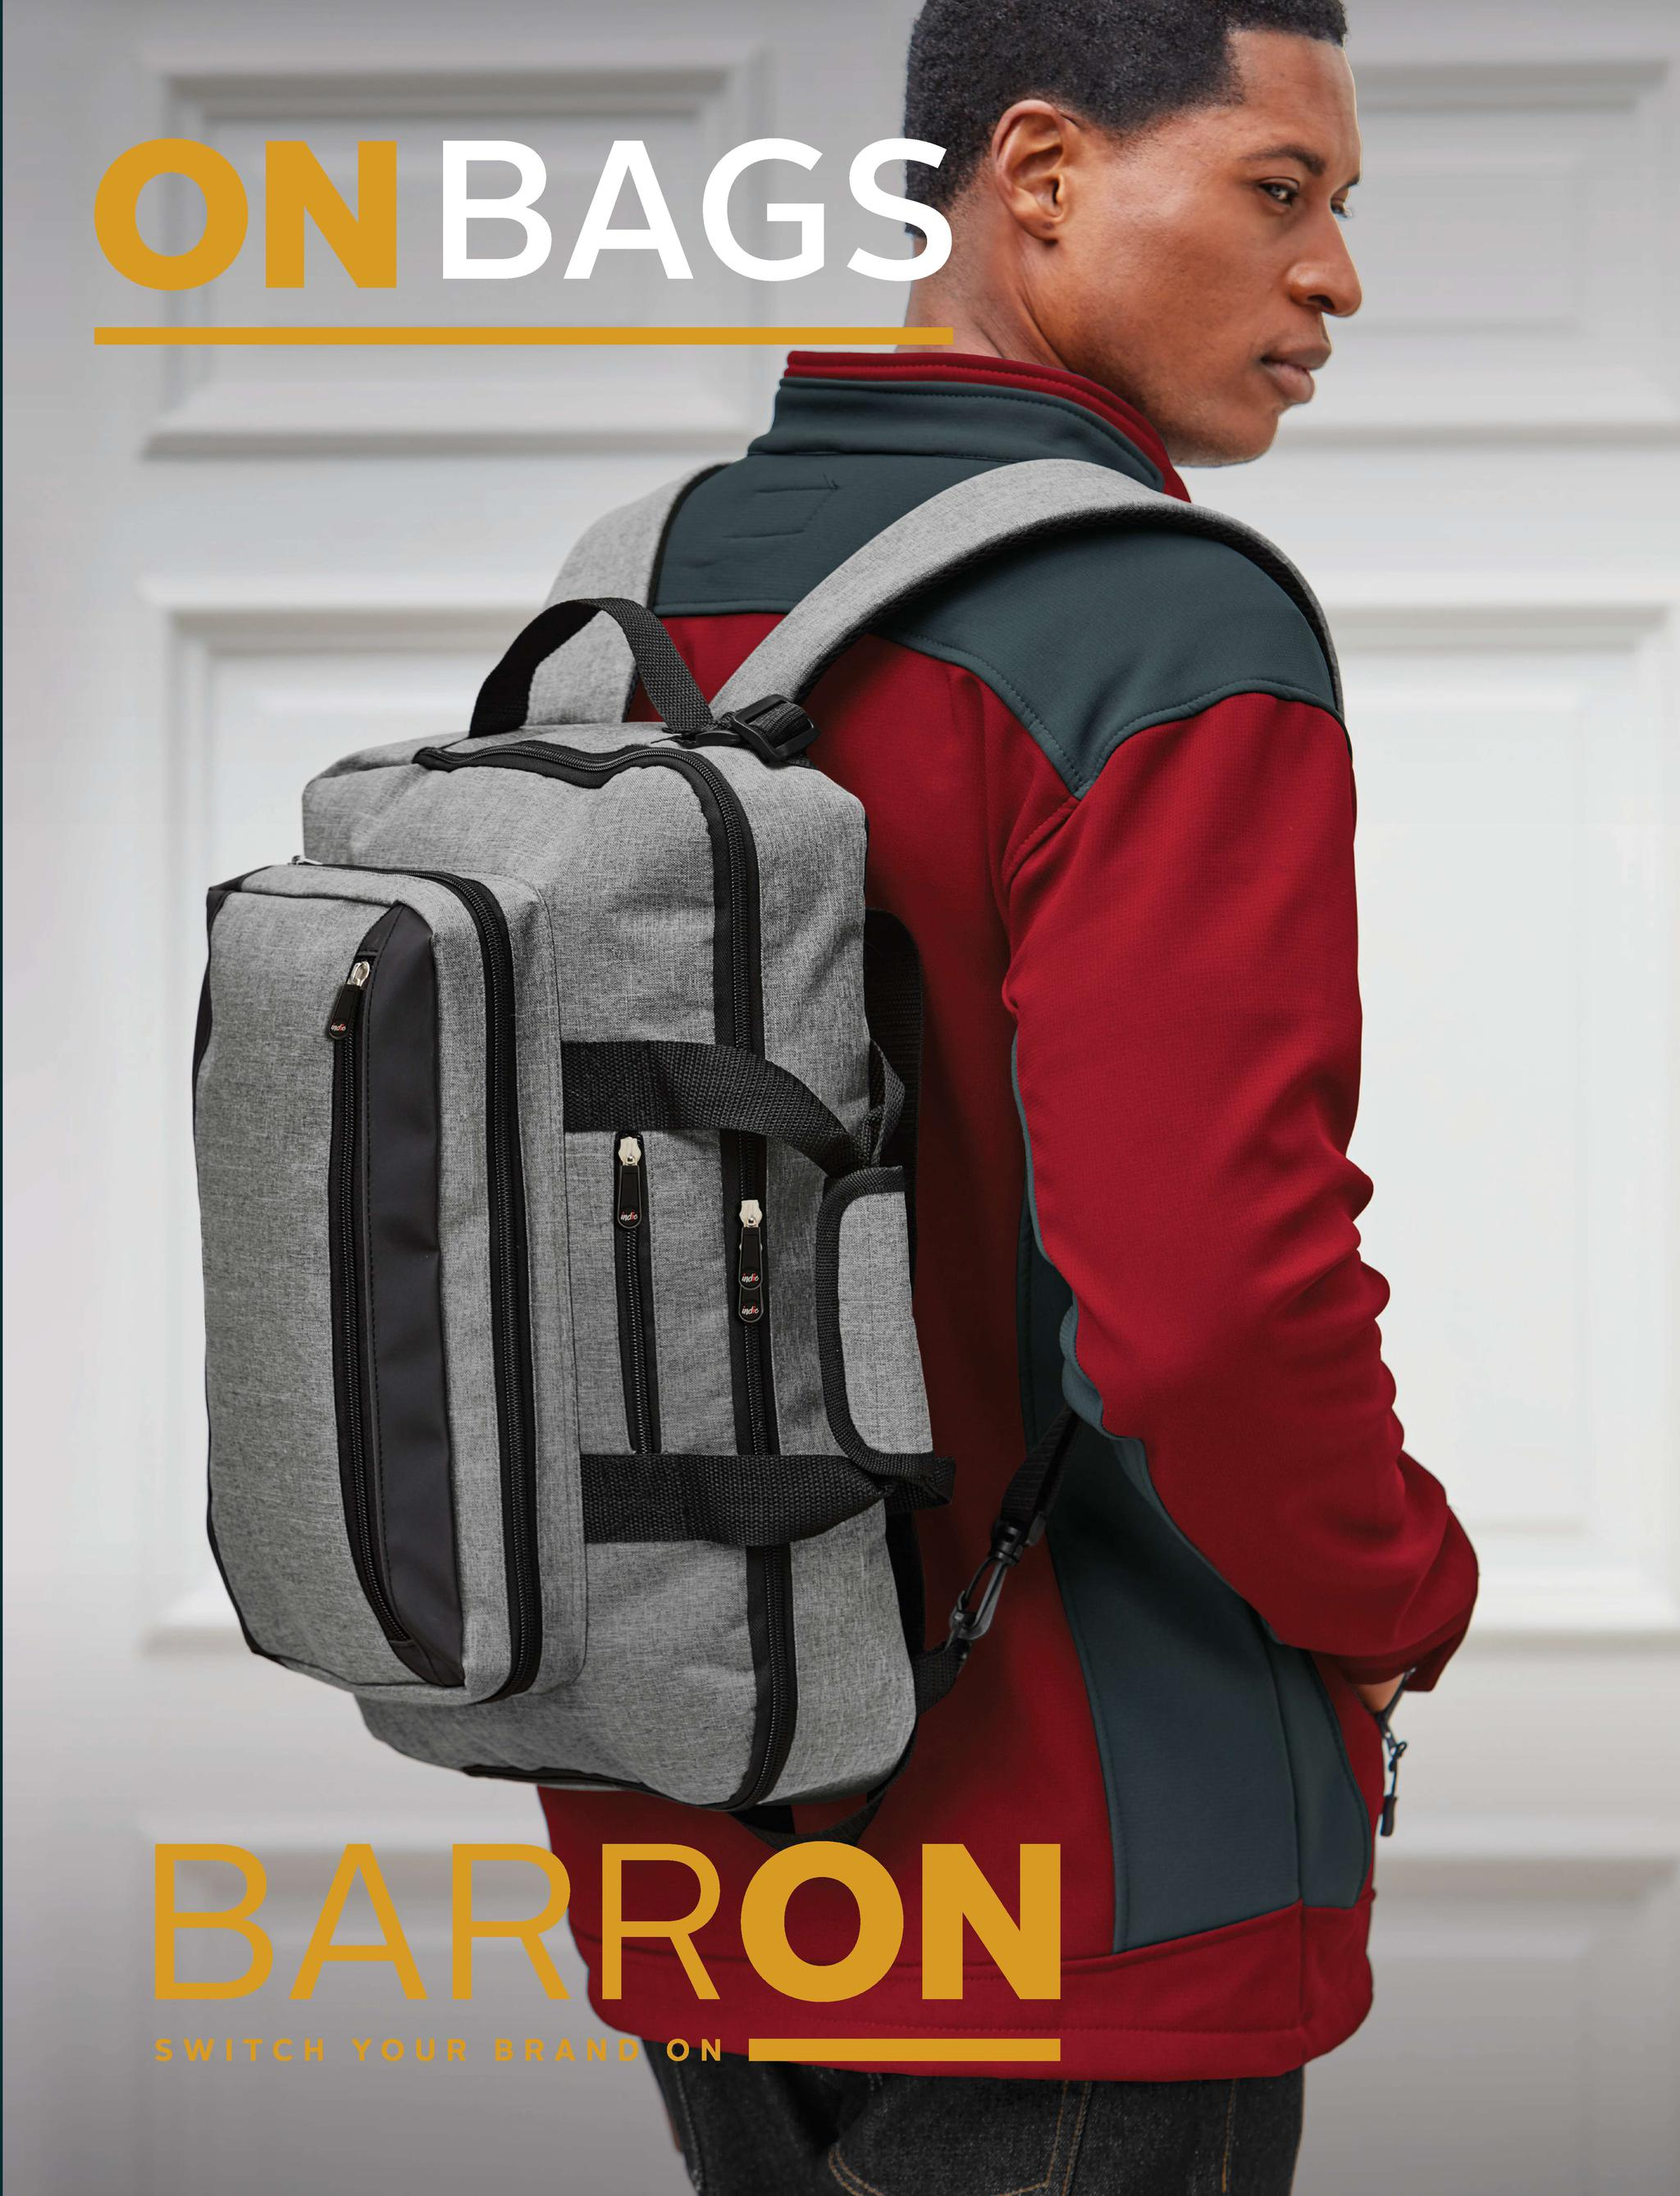 Barron Bags Catalogue